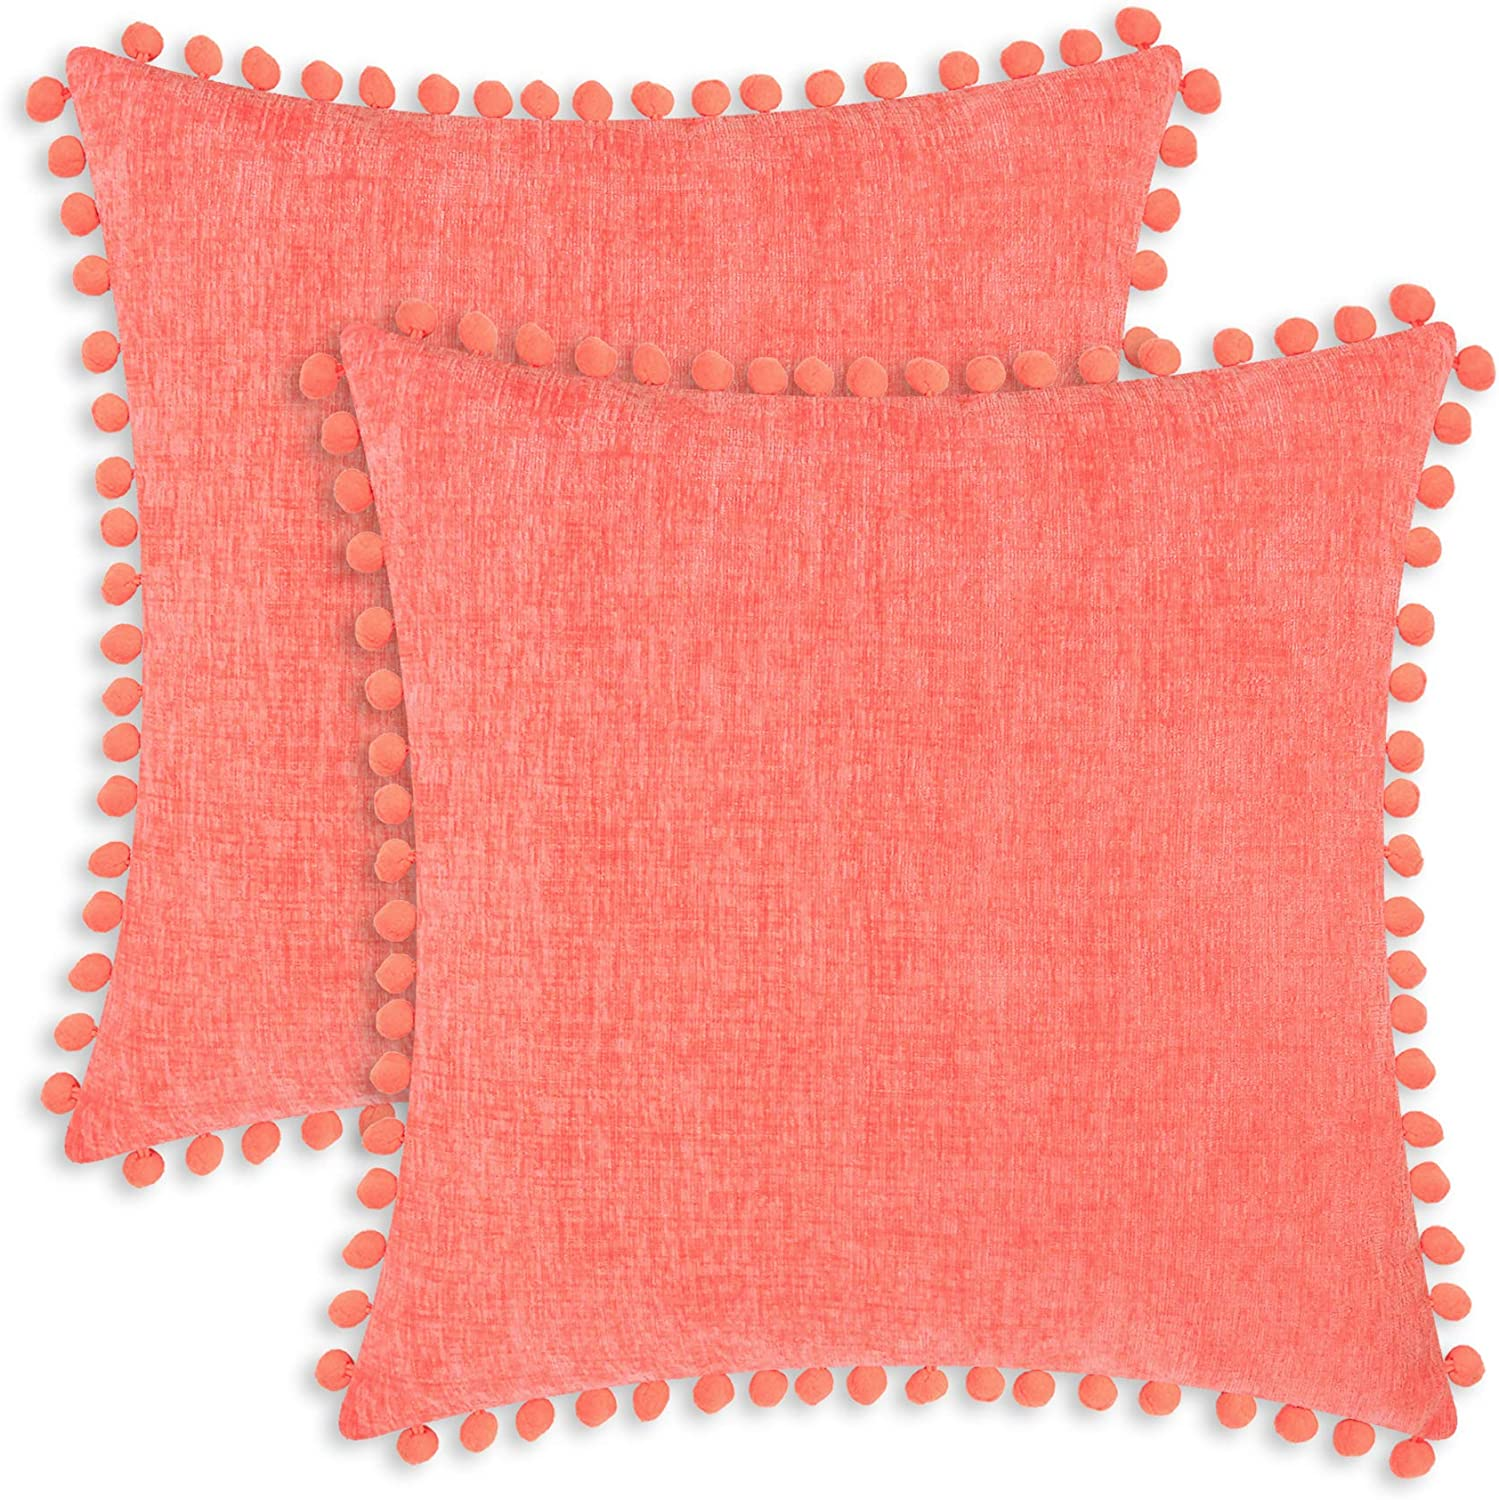 CaliTime Throw Pillow Cases Pack of 2 Cozy Solid Dyed Soft Chenille Cushion Covers with Pom Poms for Couch Sofa Home Decoration 22 X 22 Inches Living Coral